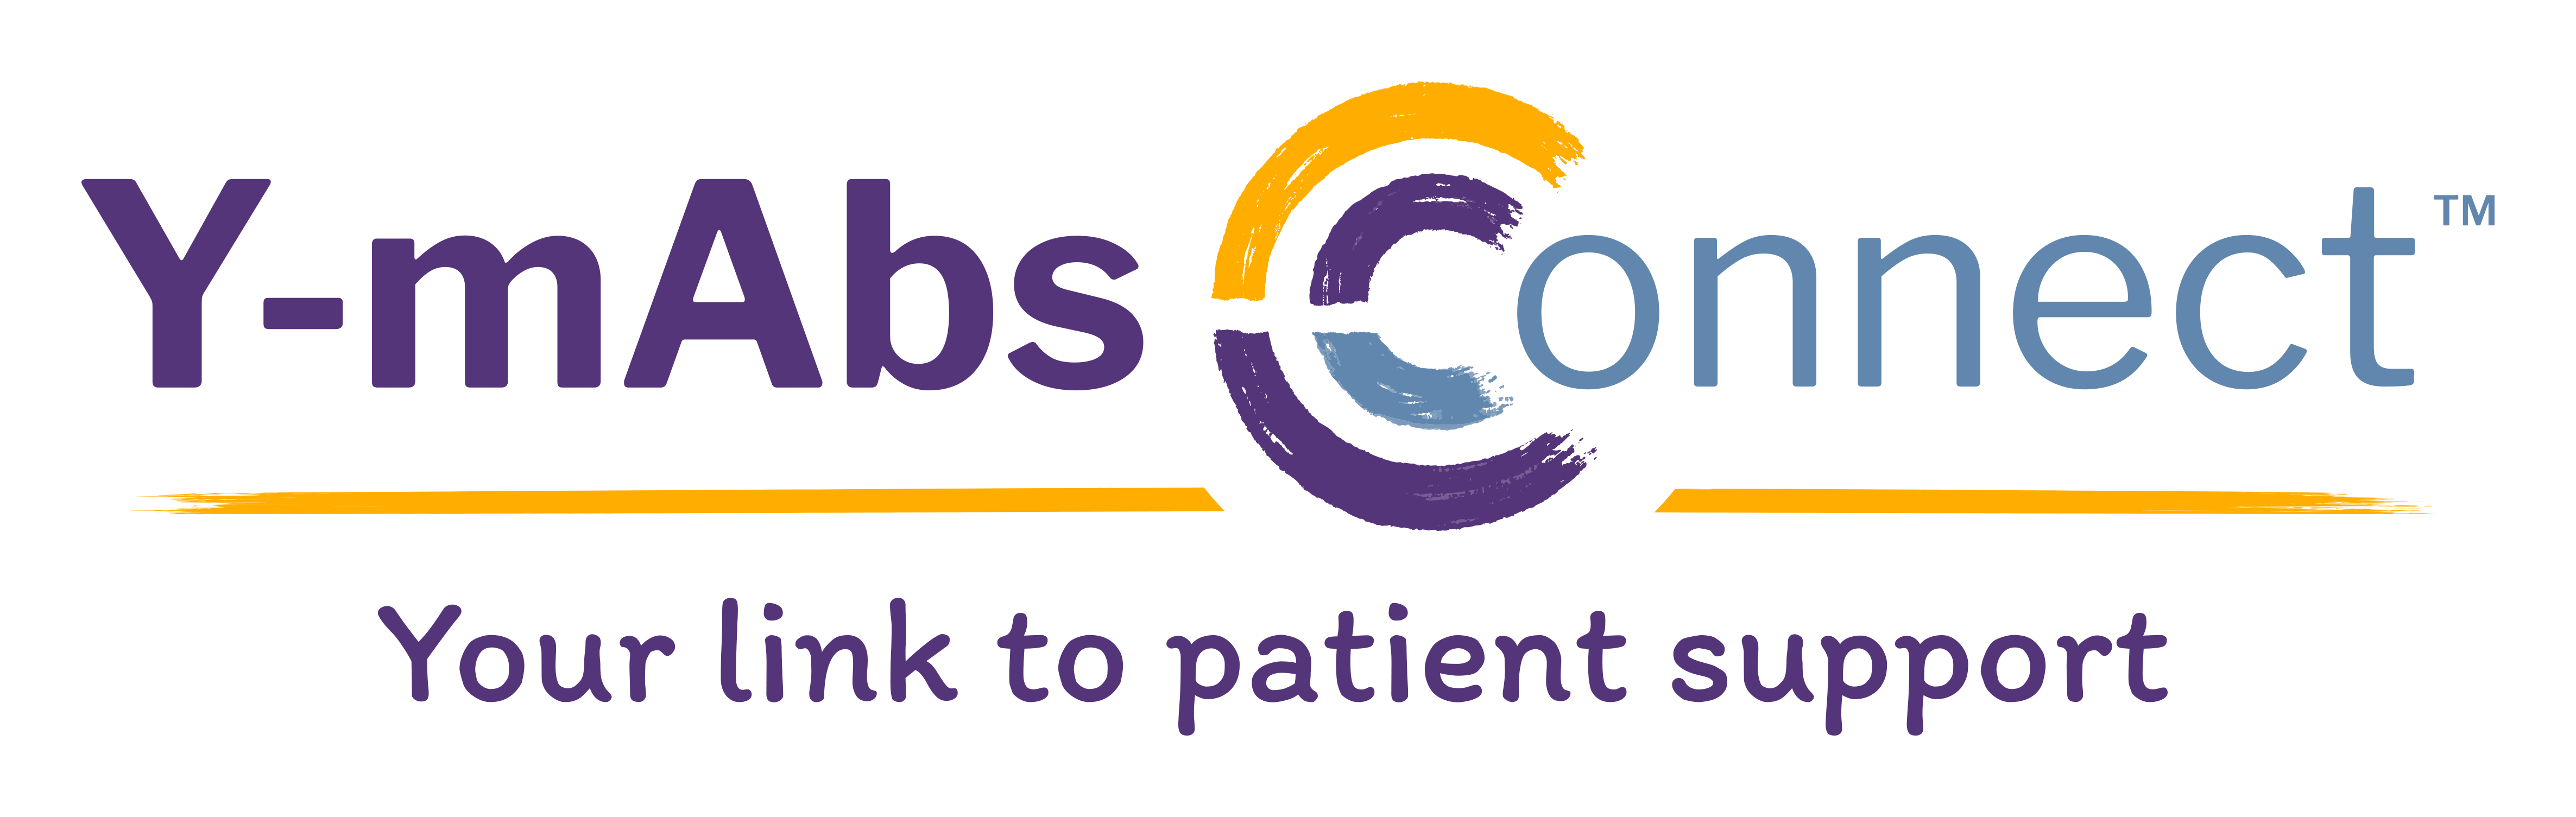 Y-mAbs Connect: Your link to patient support